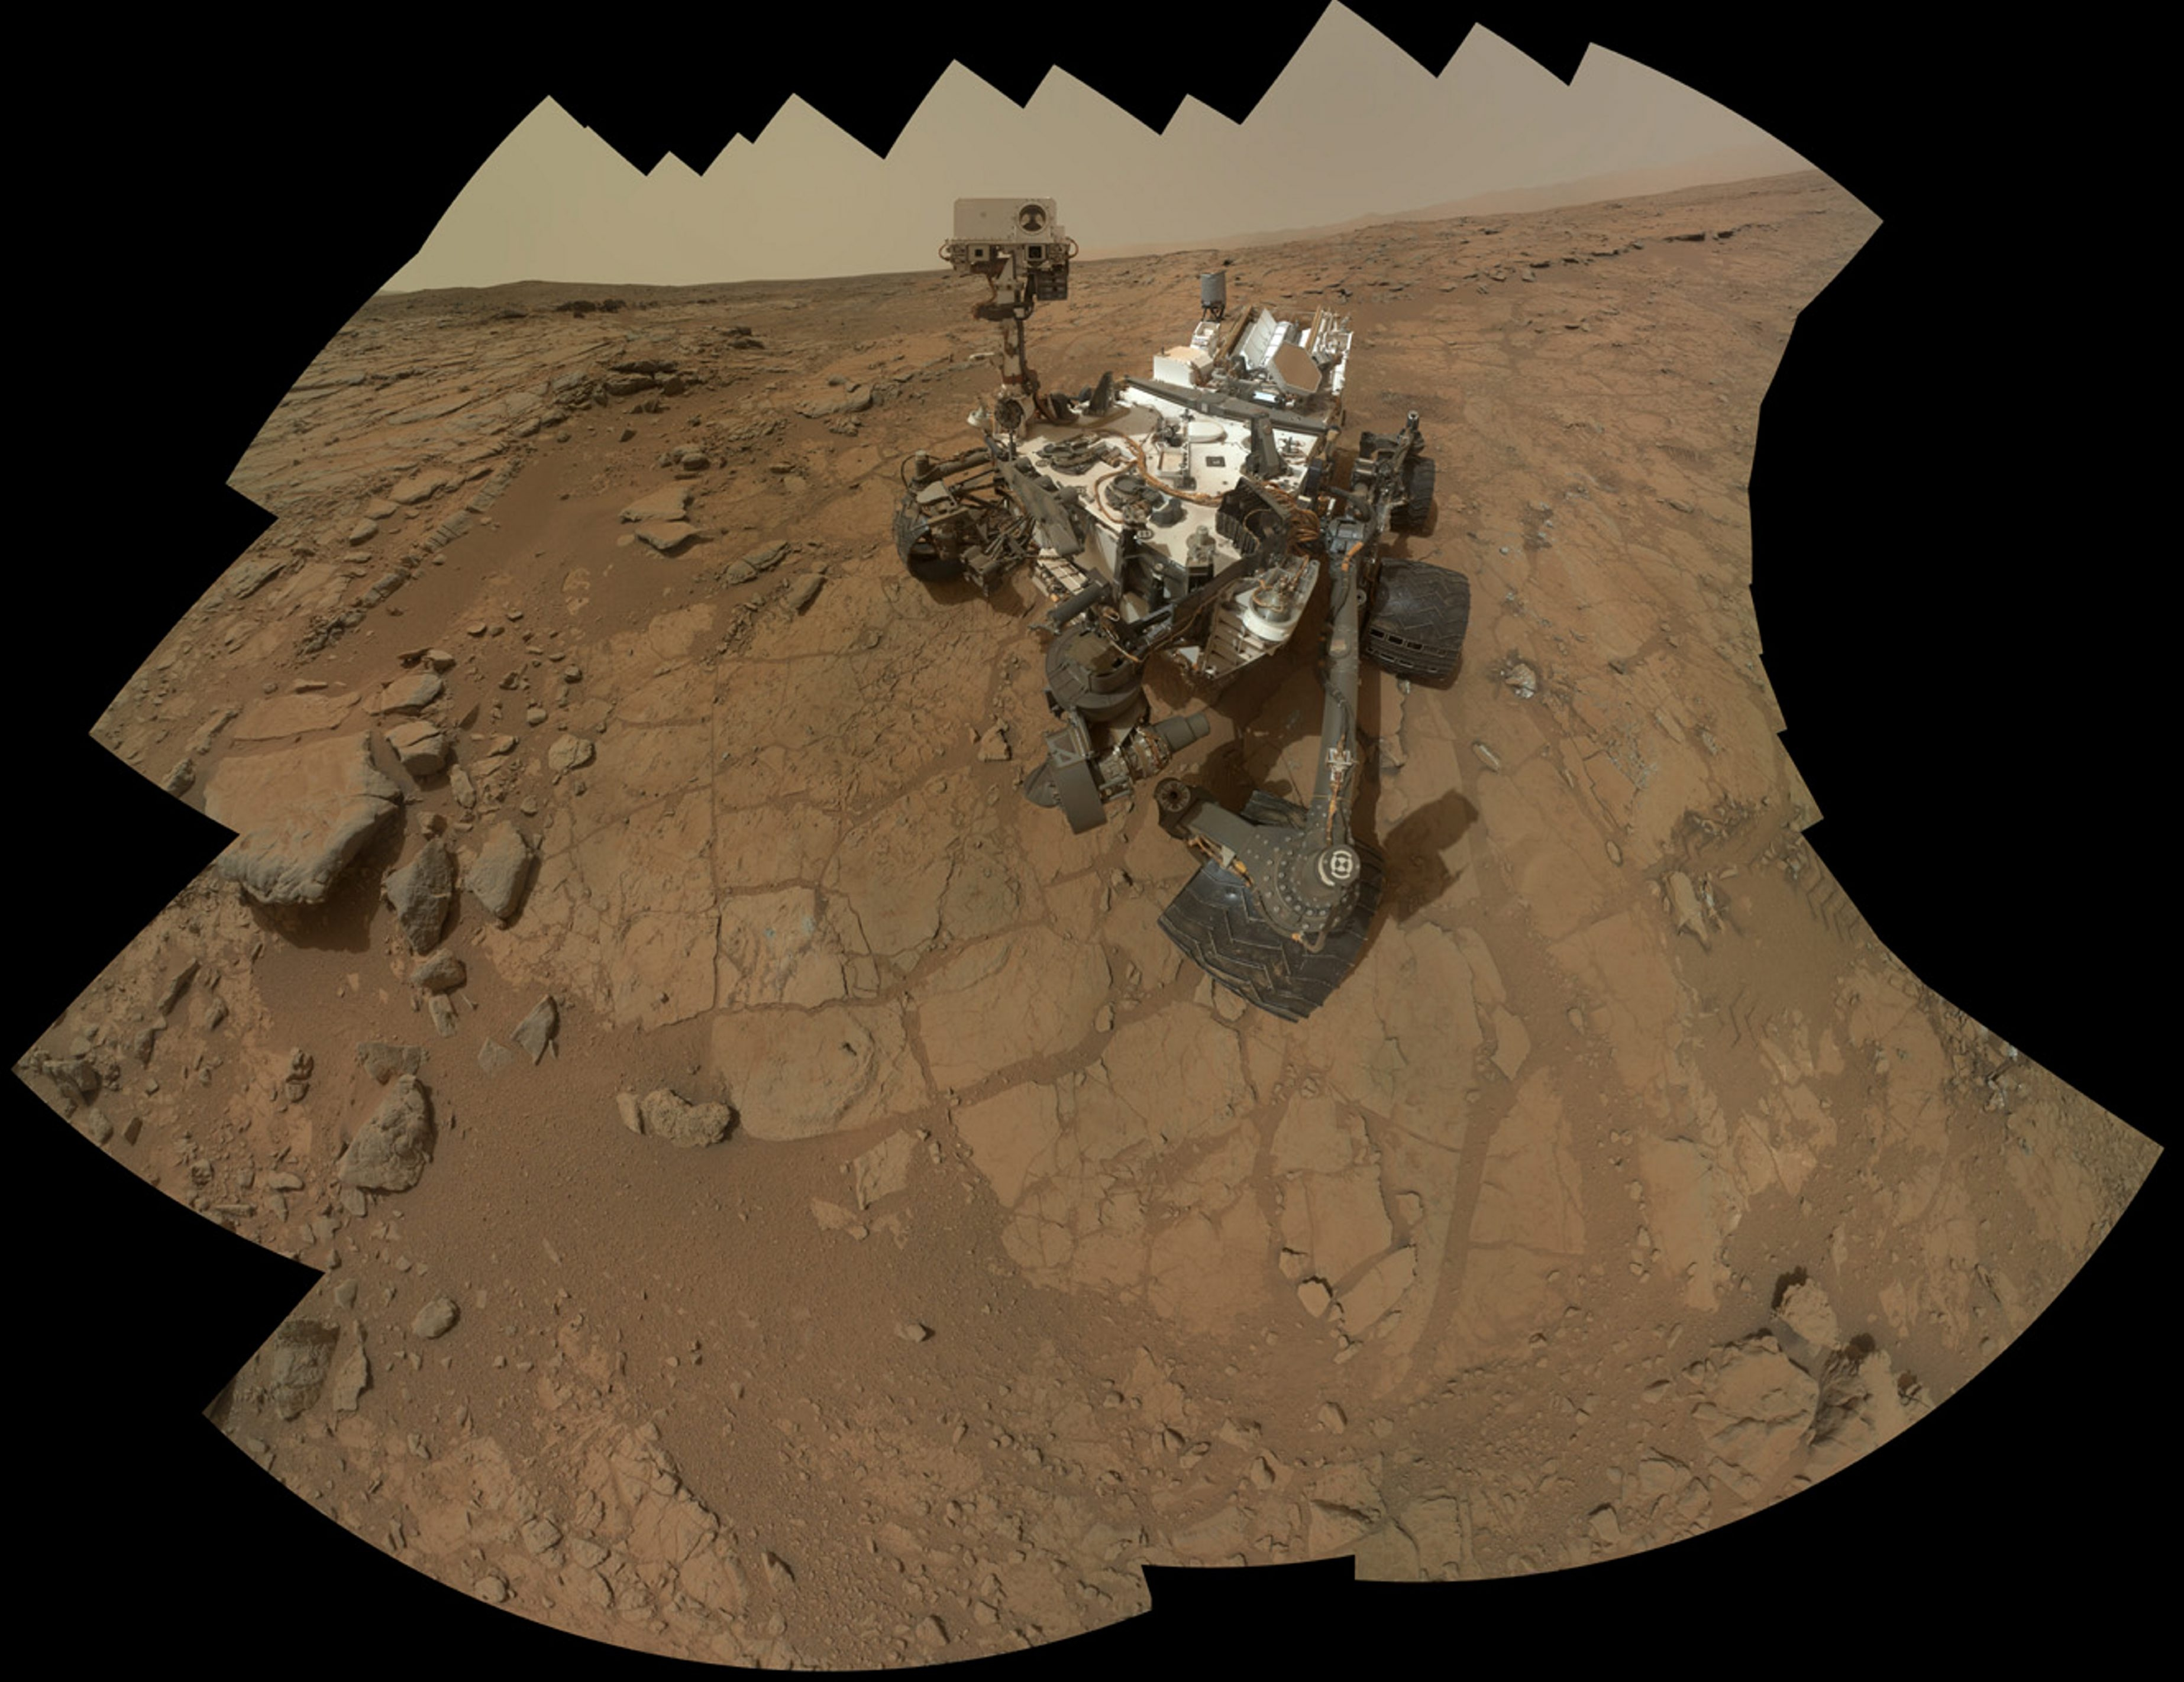 In an undated handout image, the NASA´s Curiosity at a site selected for the first rock-drilling activities by the rover. More than 3.5 billion years ago, a meteor slammed into Mars, leaving behind a depression known as Gale Crater and a mountain rising more than three miles from its floor. (NASA via The New York Times) -- FOR EDITORIAL USE ONLY.